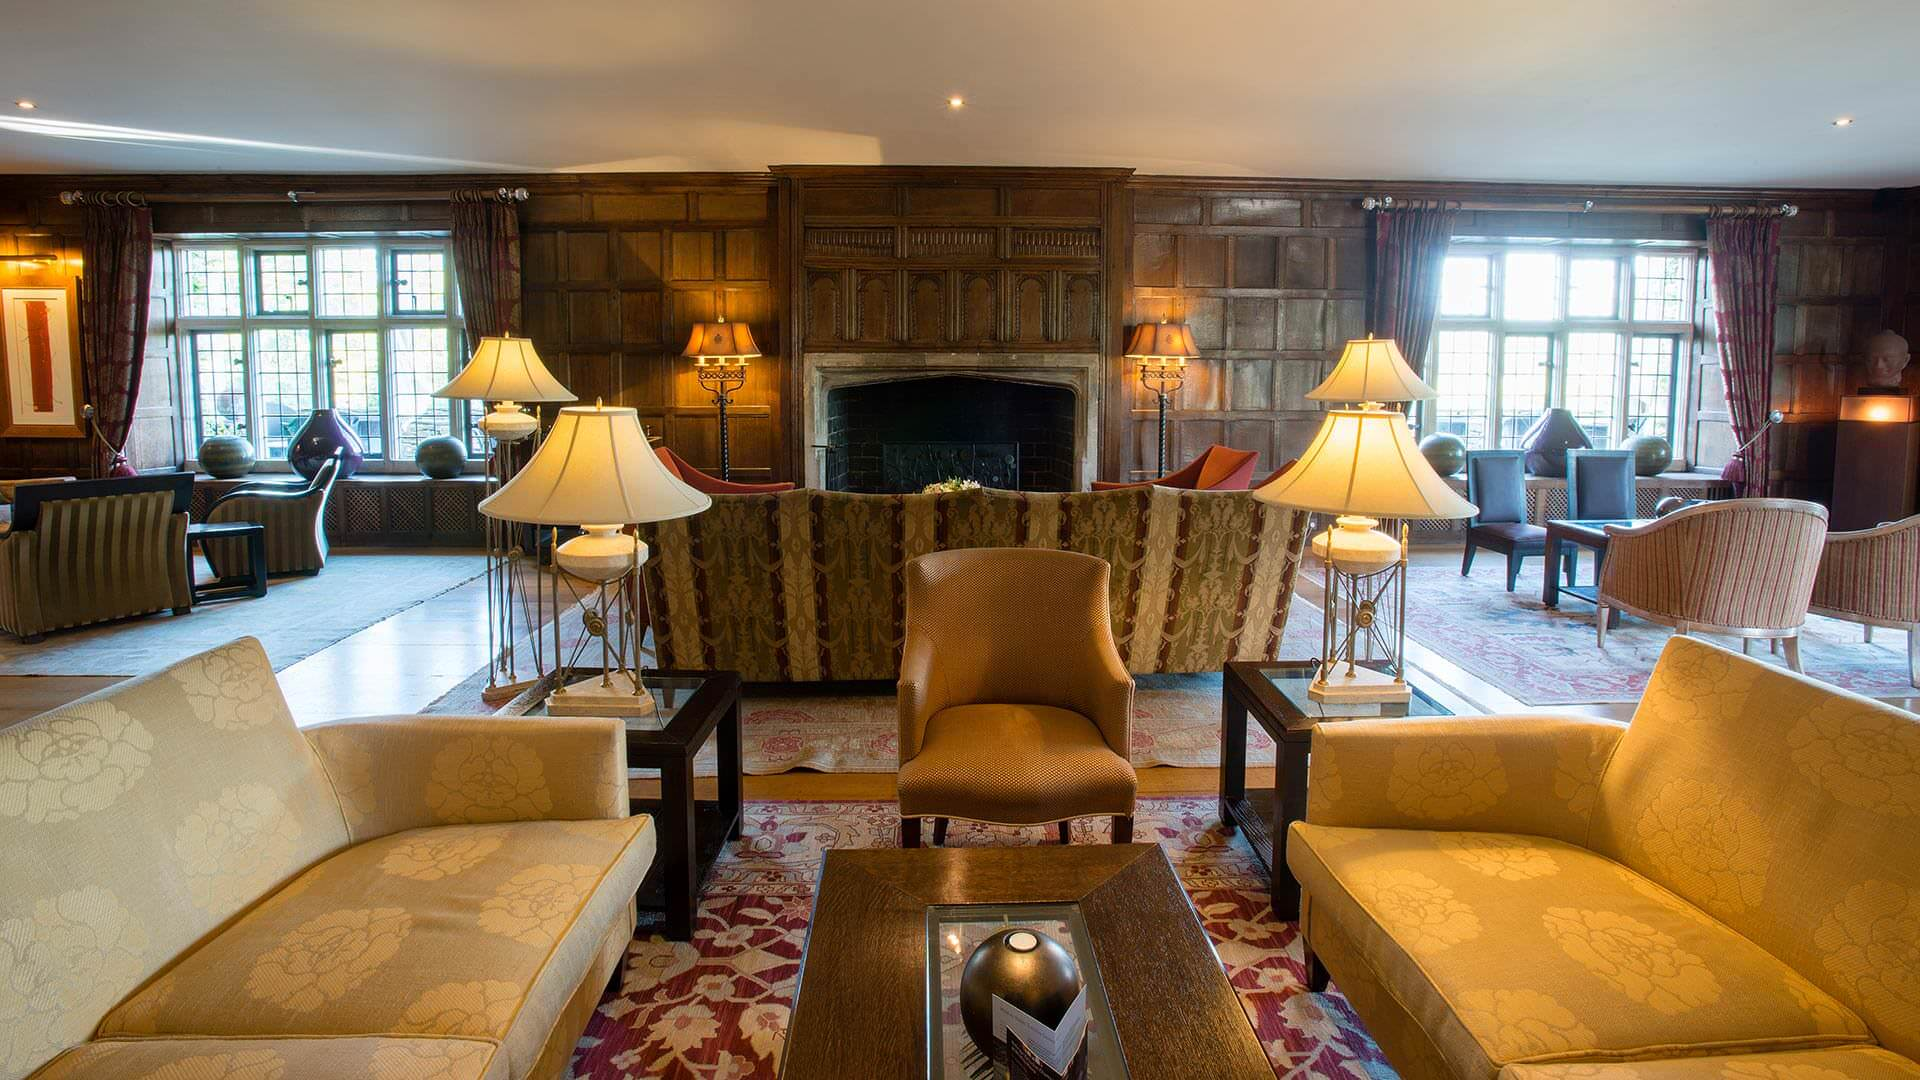 Whatley Manor Hotel And Spa Pride Of Britain Hotels